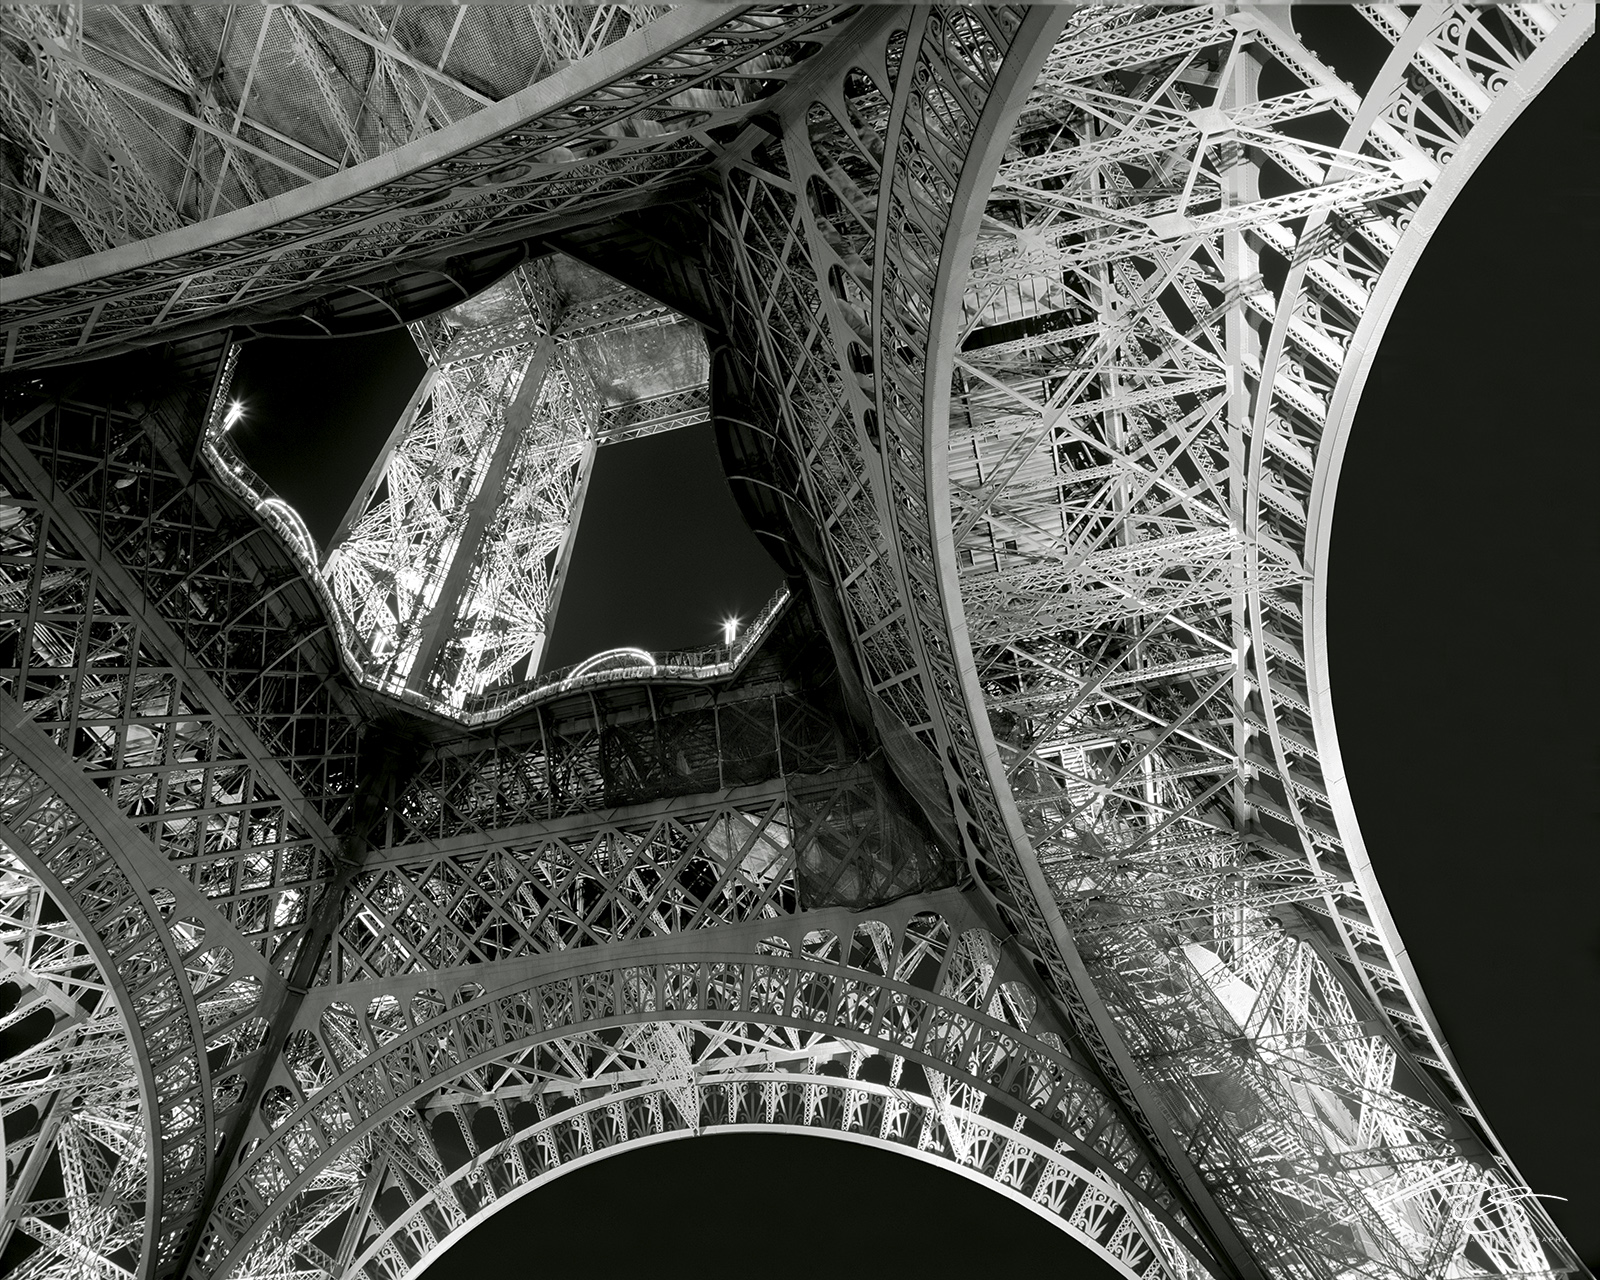 eiffel tower, la tour eiffel, black and white, intricate detail, architectural masterpiece, iron tower, night, lights, incredible architecture, paris landmark, intricate, intricacy, monochrome, photo